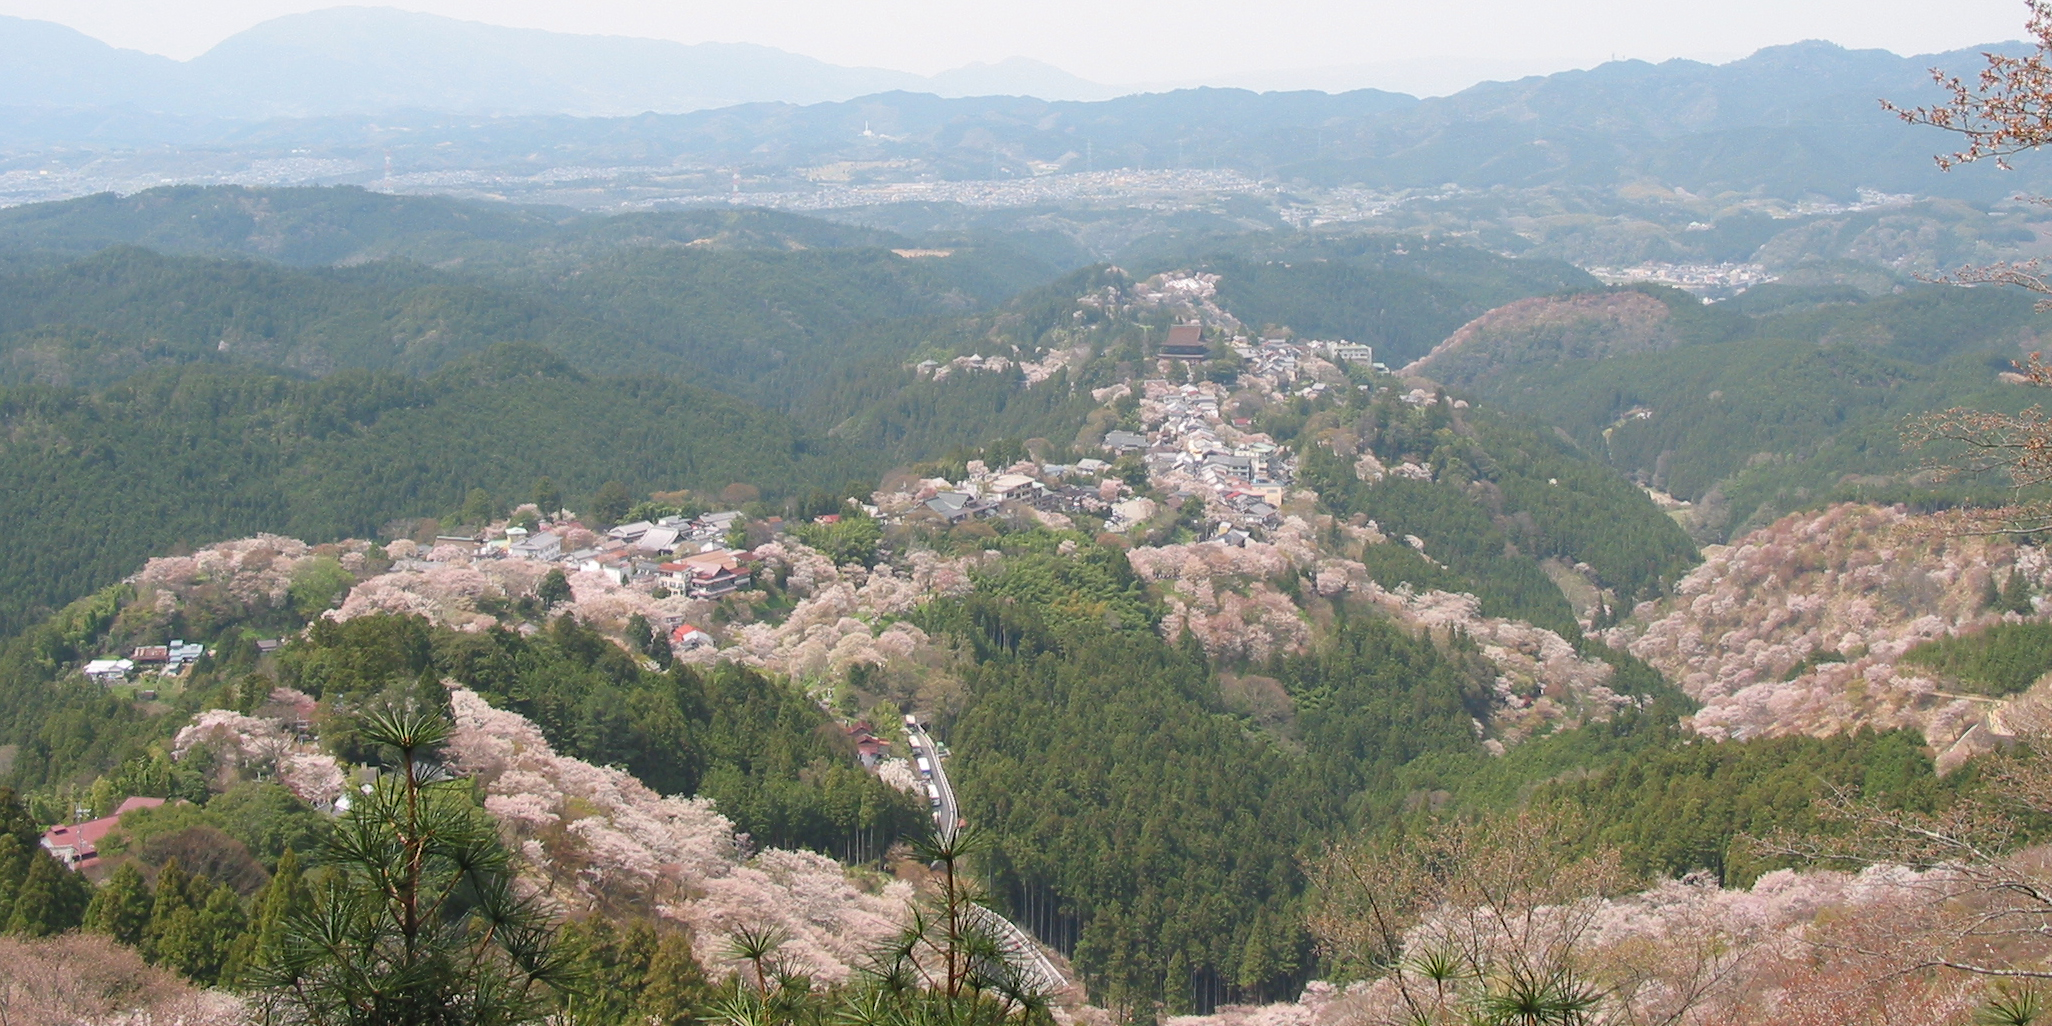 Cherry blossoms at Yoshinoyama